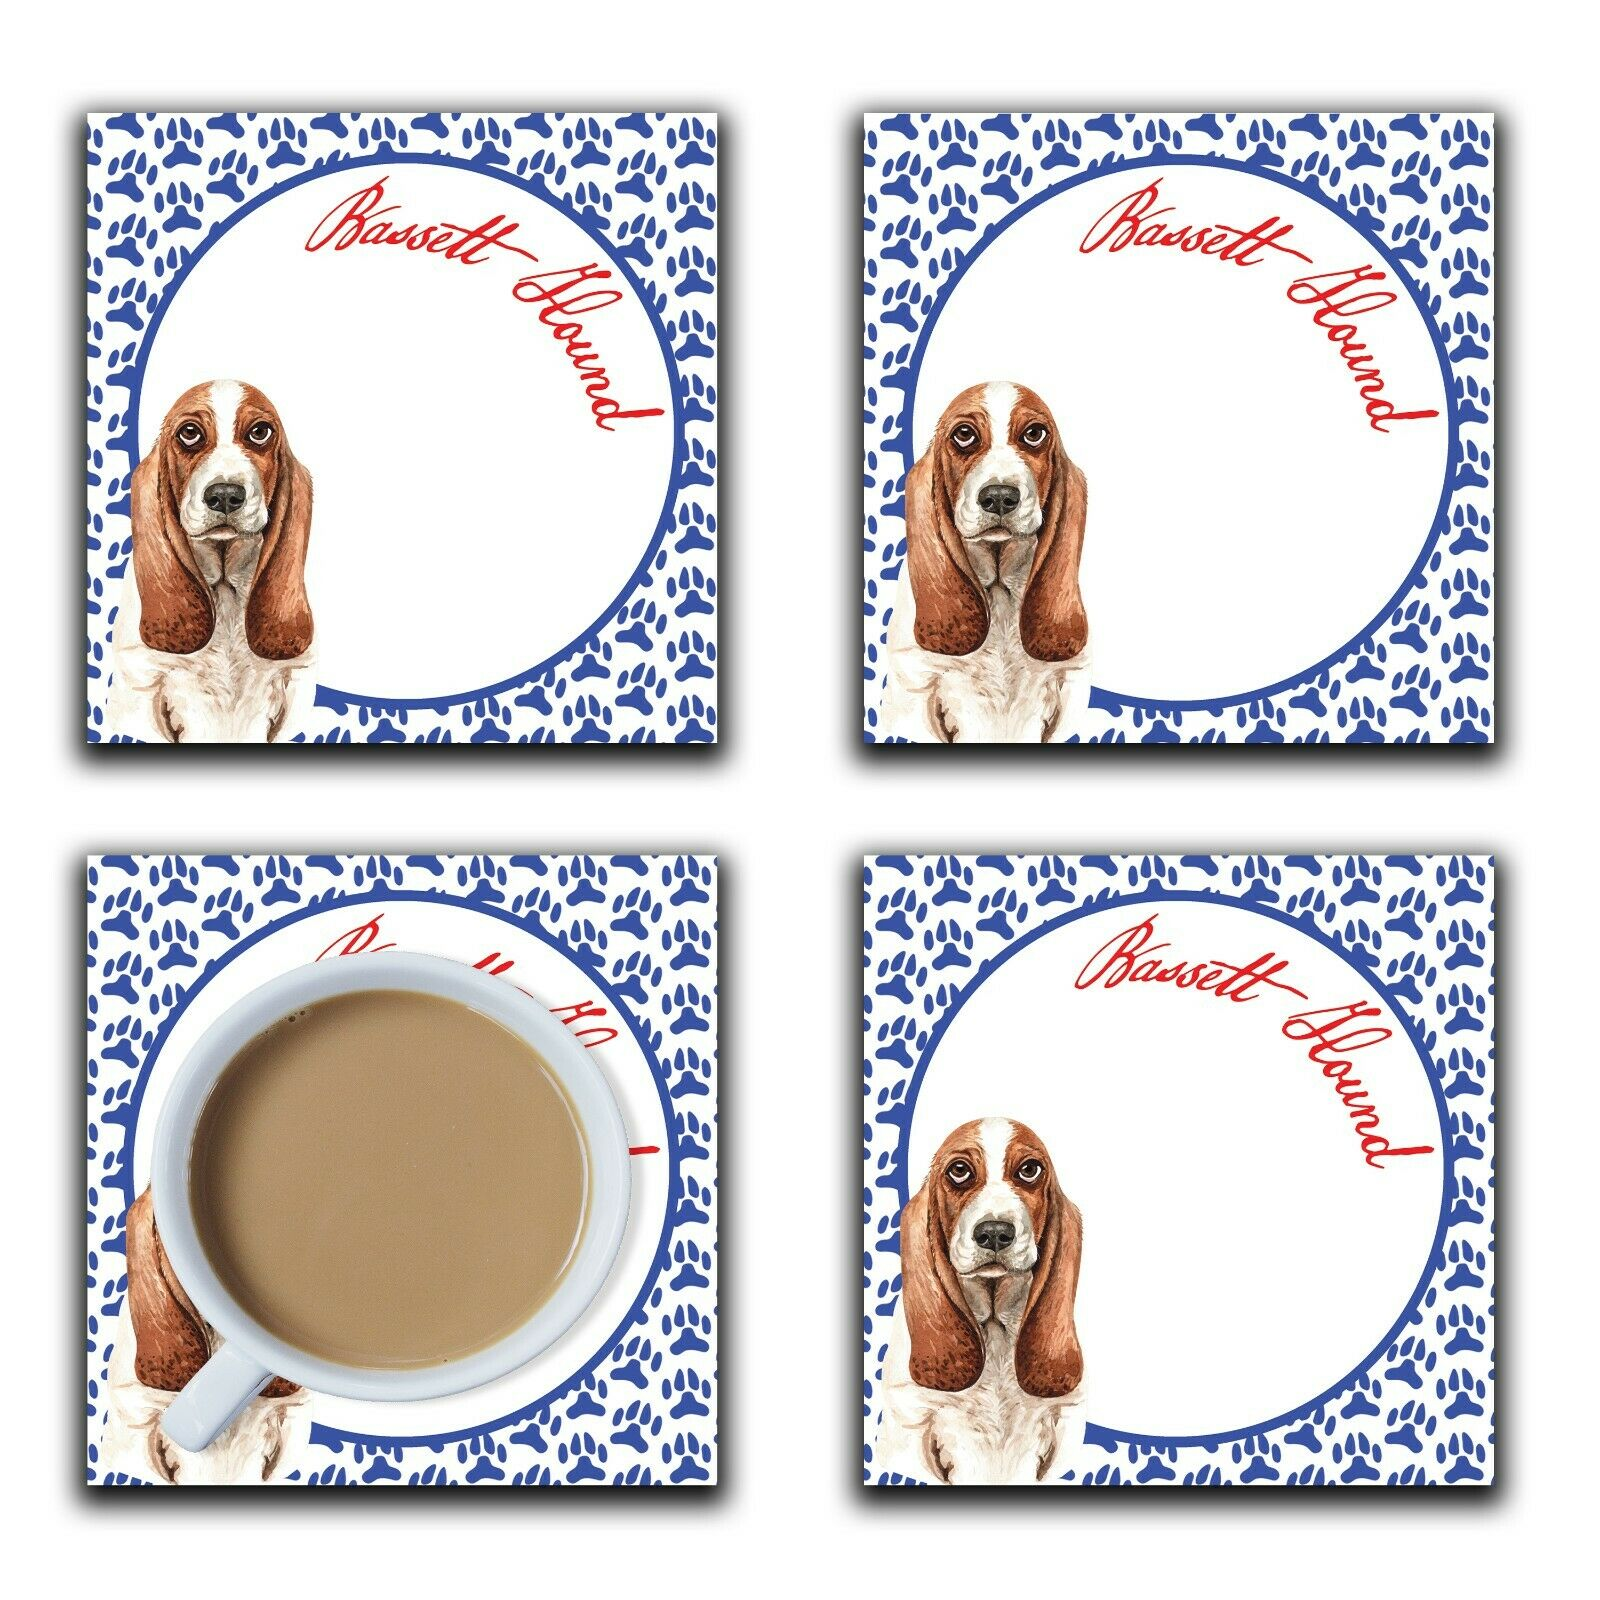 Embossi Printed Basset Hound, wood or ceramic tile, set of 4 Dog Coasters